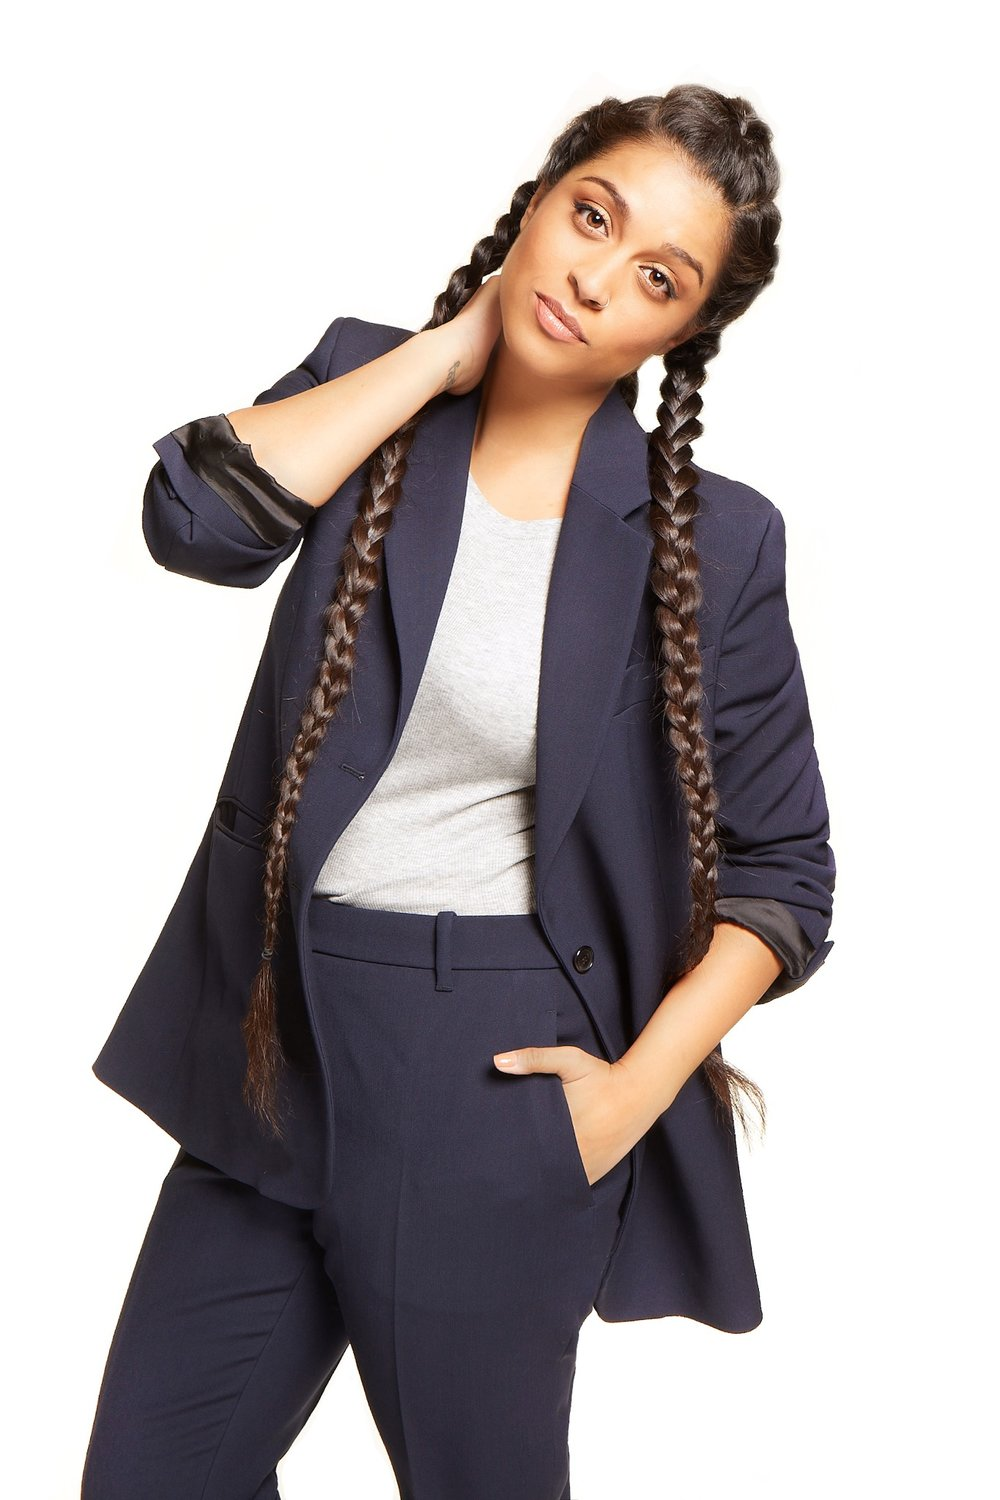 Lilly Singh Lilly Singh new pictures